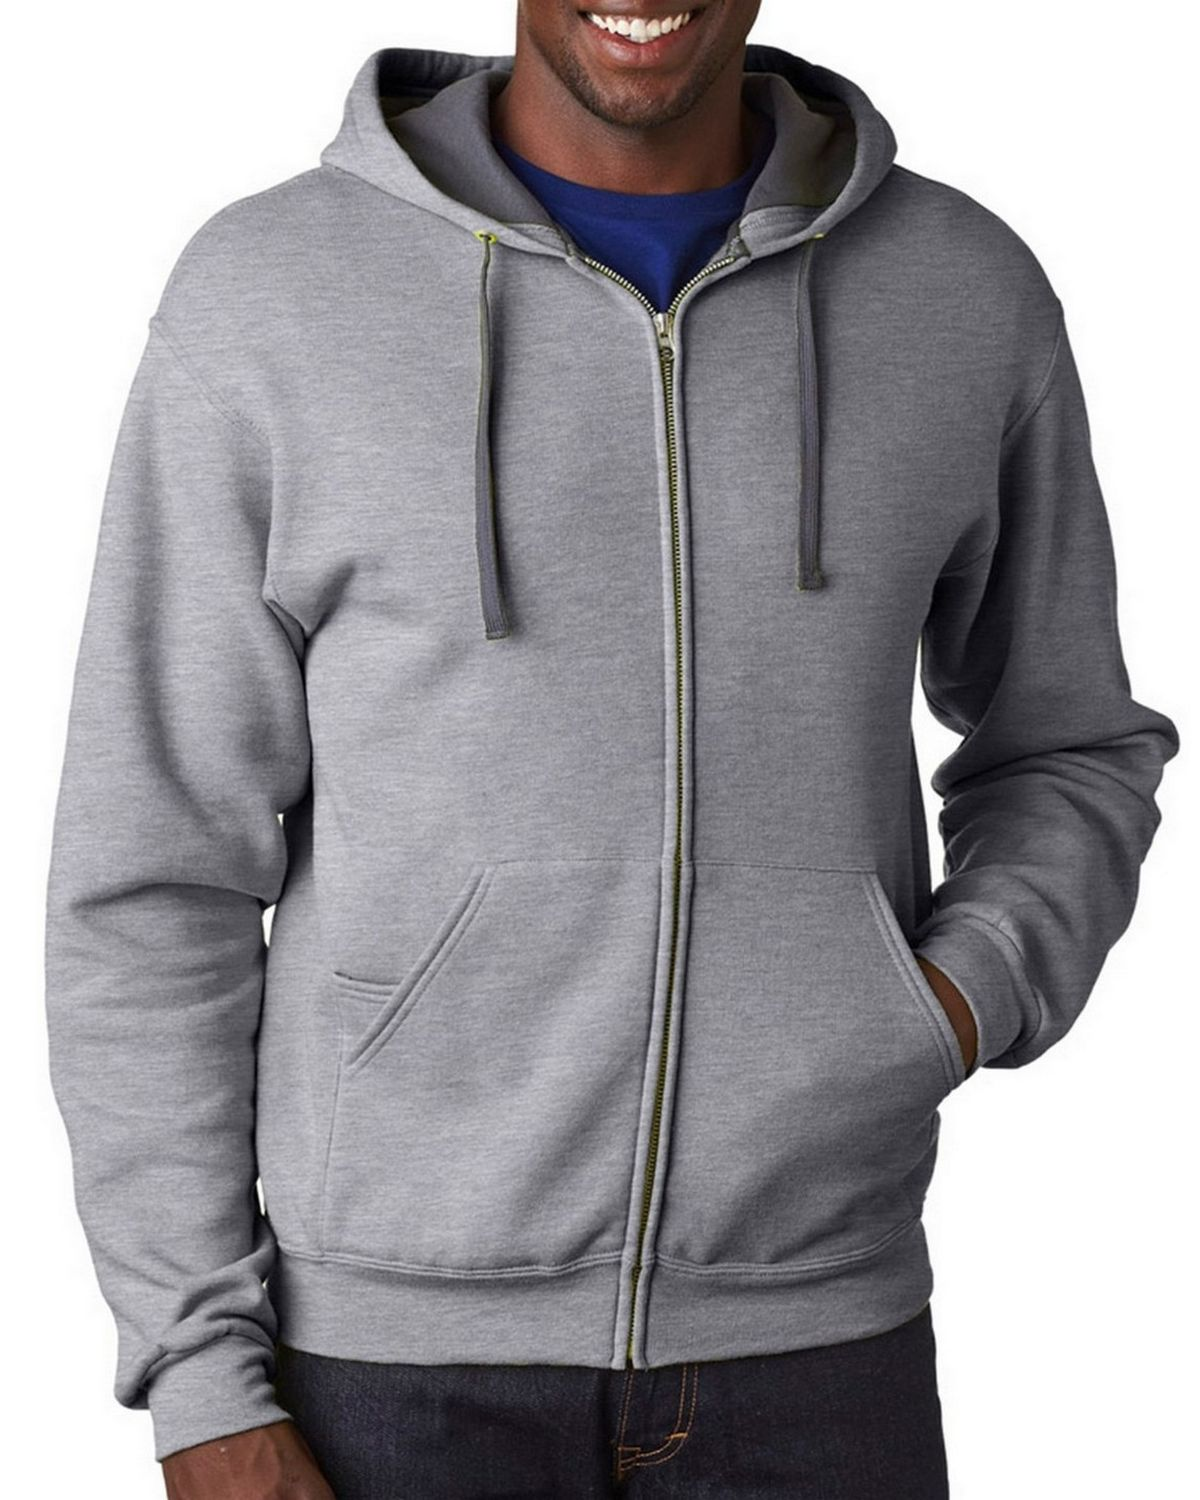 Fruit Of The Loom SF73 Men's Sofspun Full-Zip Hooded Sweatshirt